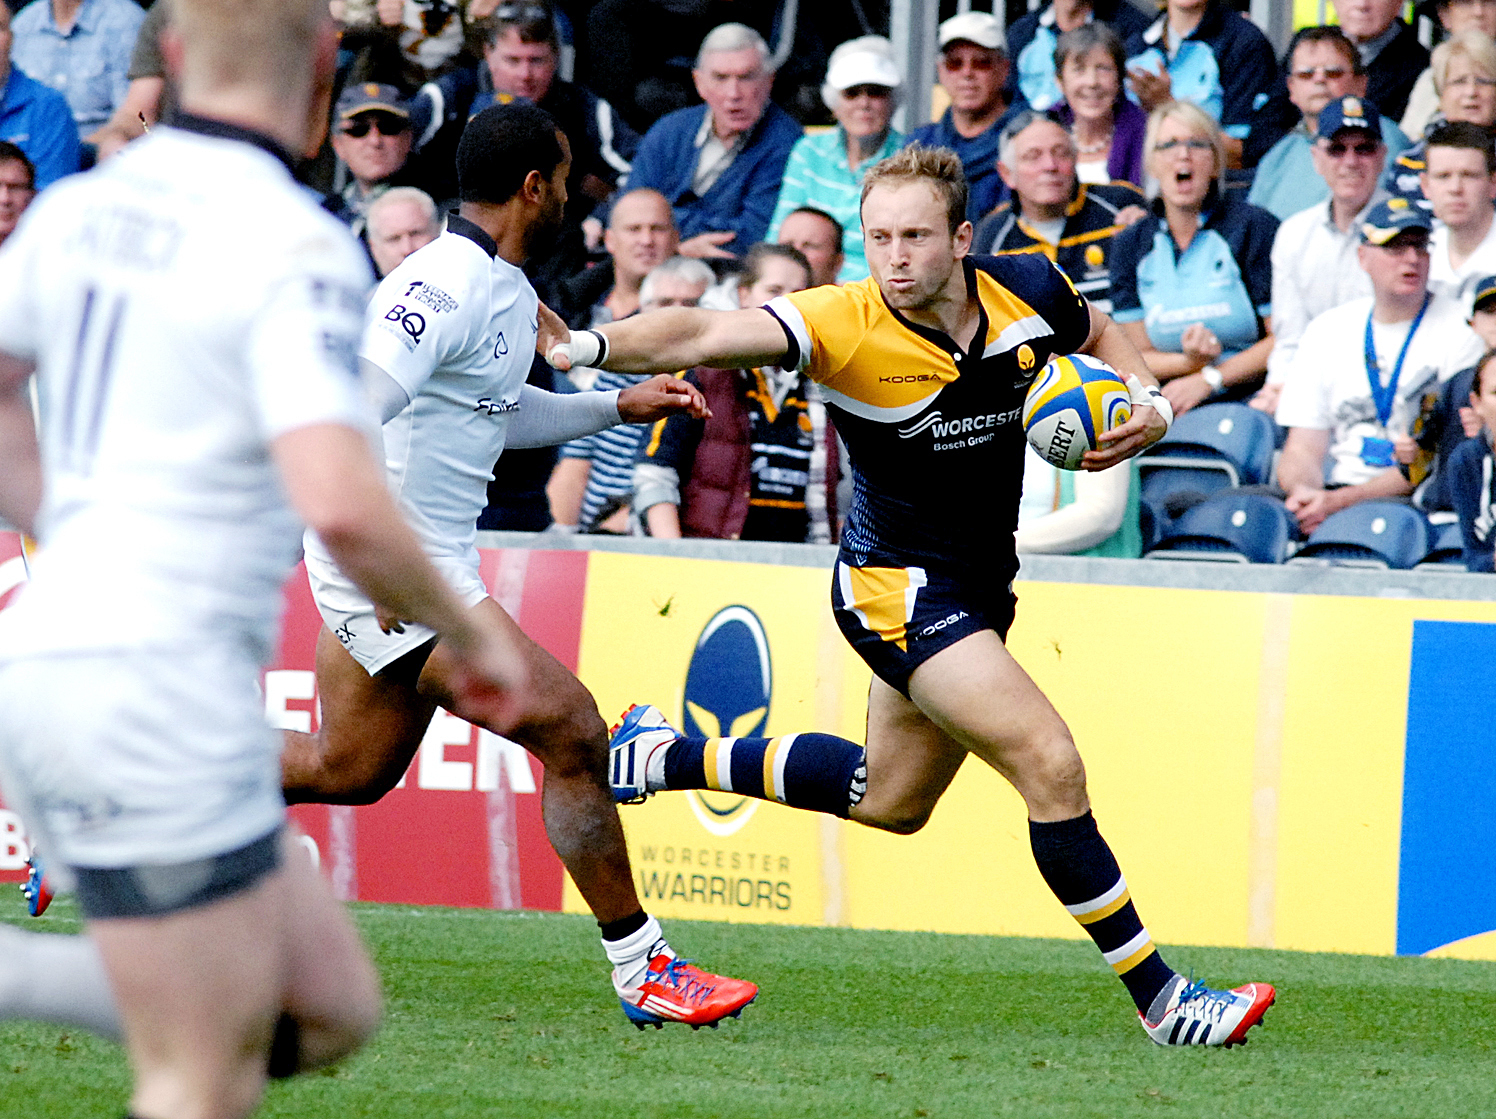 Paul Jackson 06.10.13 Worcester  Aviva Premiership Worcester Warriors vs Newcastle Falcons. Chris Pennell. (3831020)